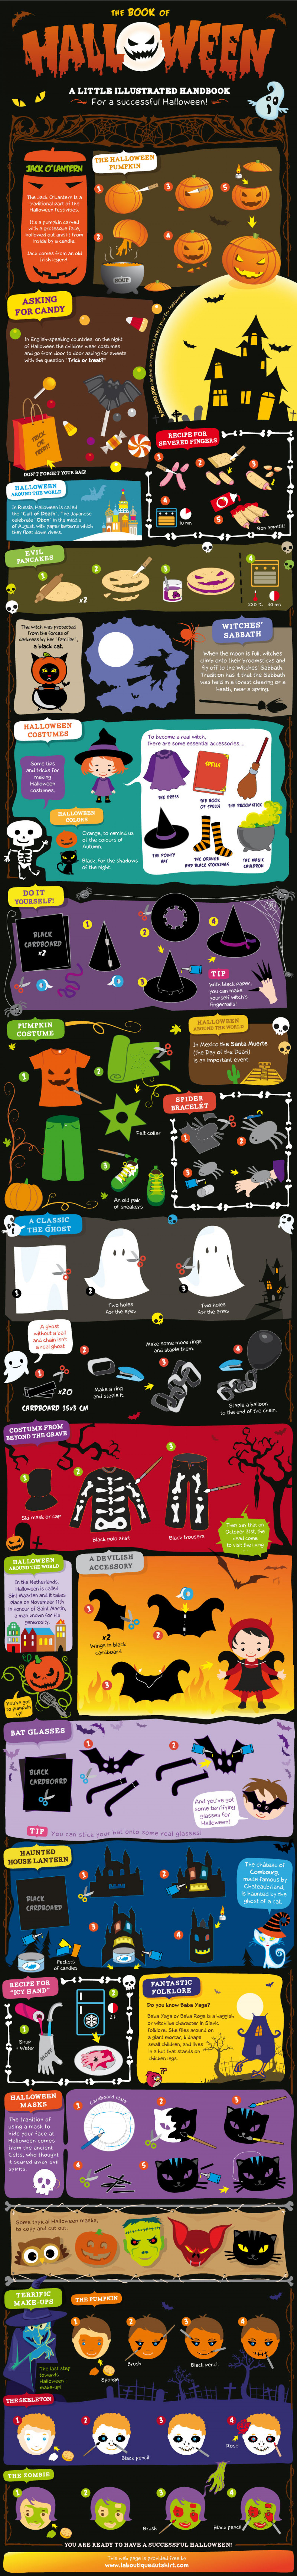 The Book of Halloween Infographic